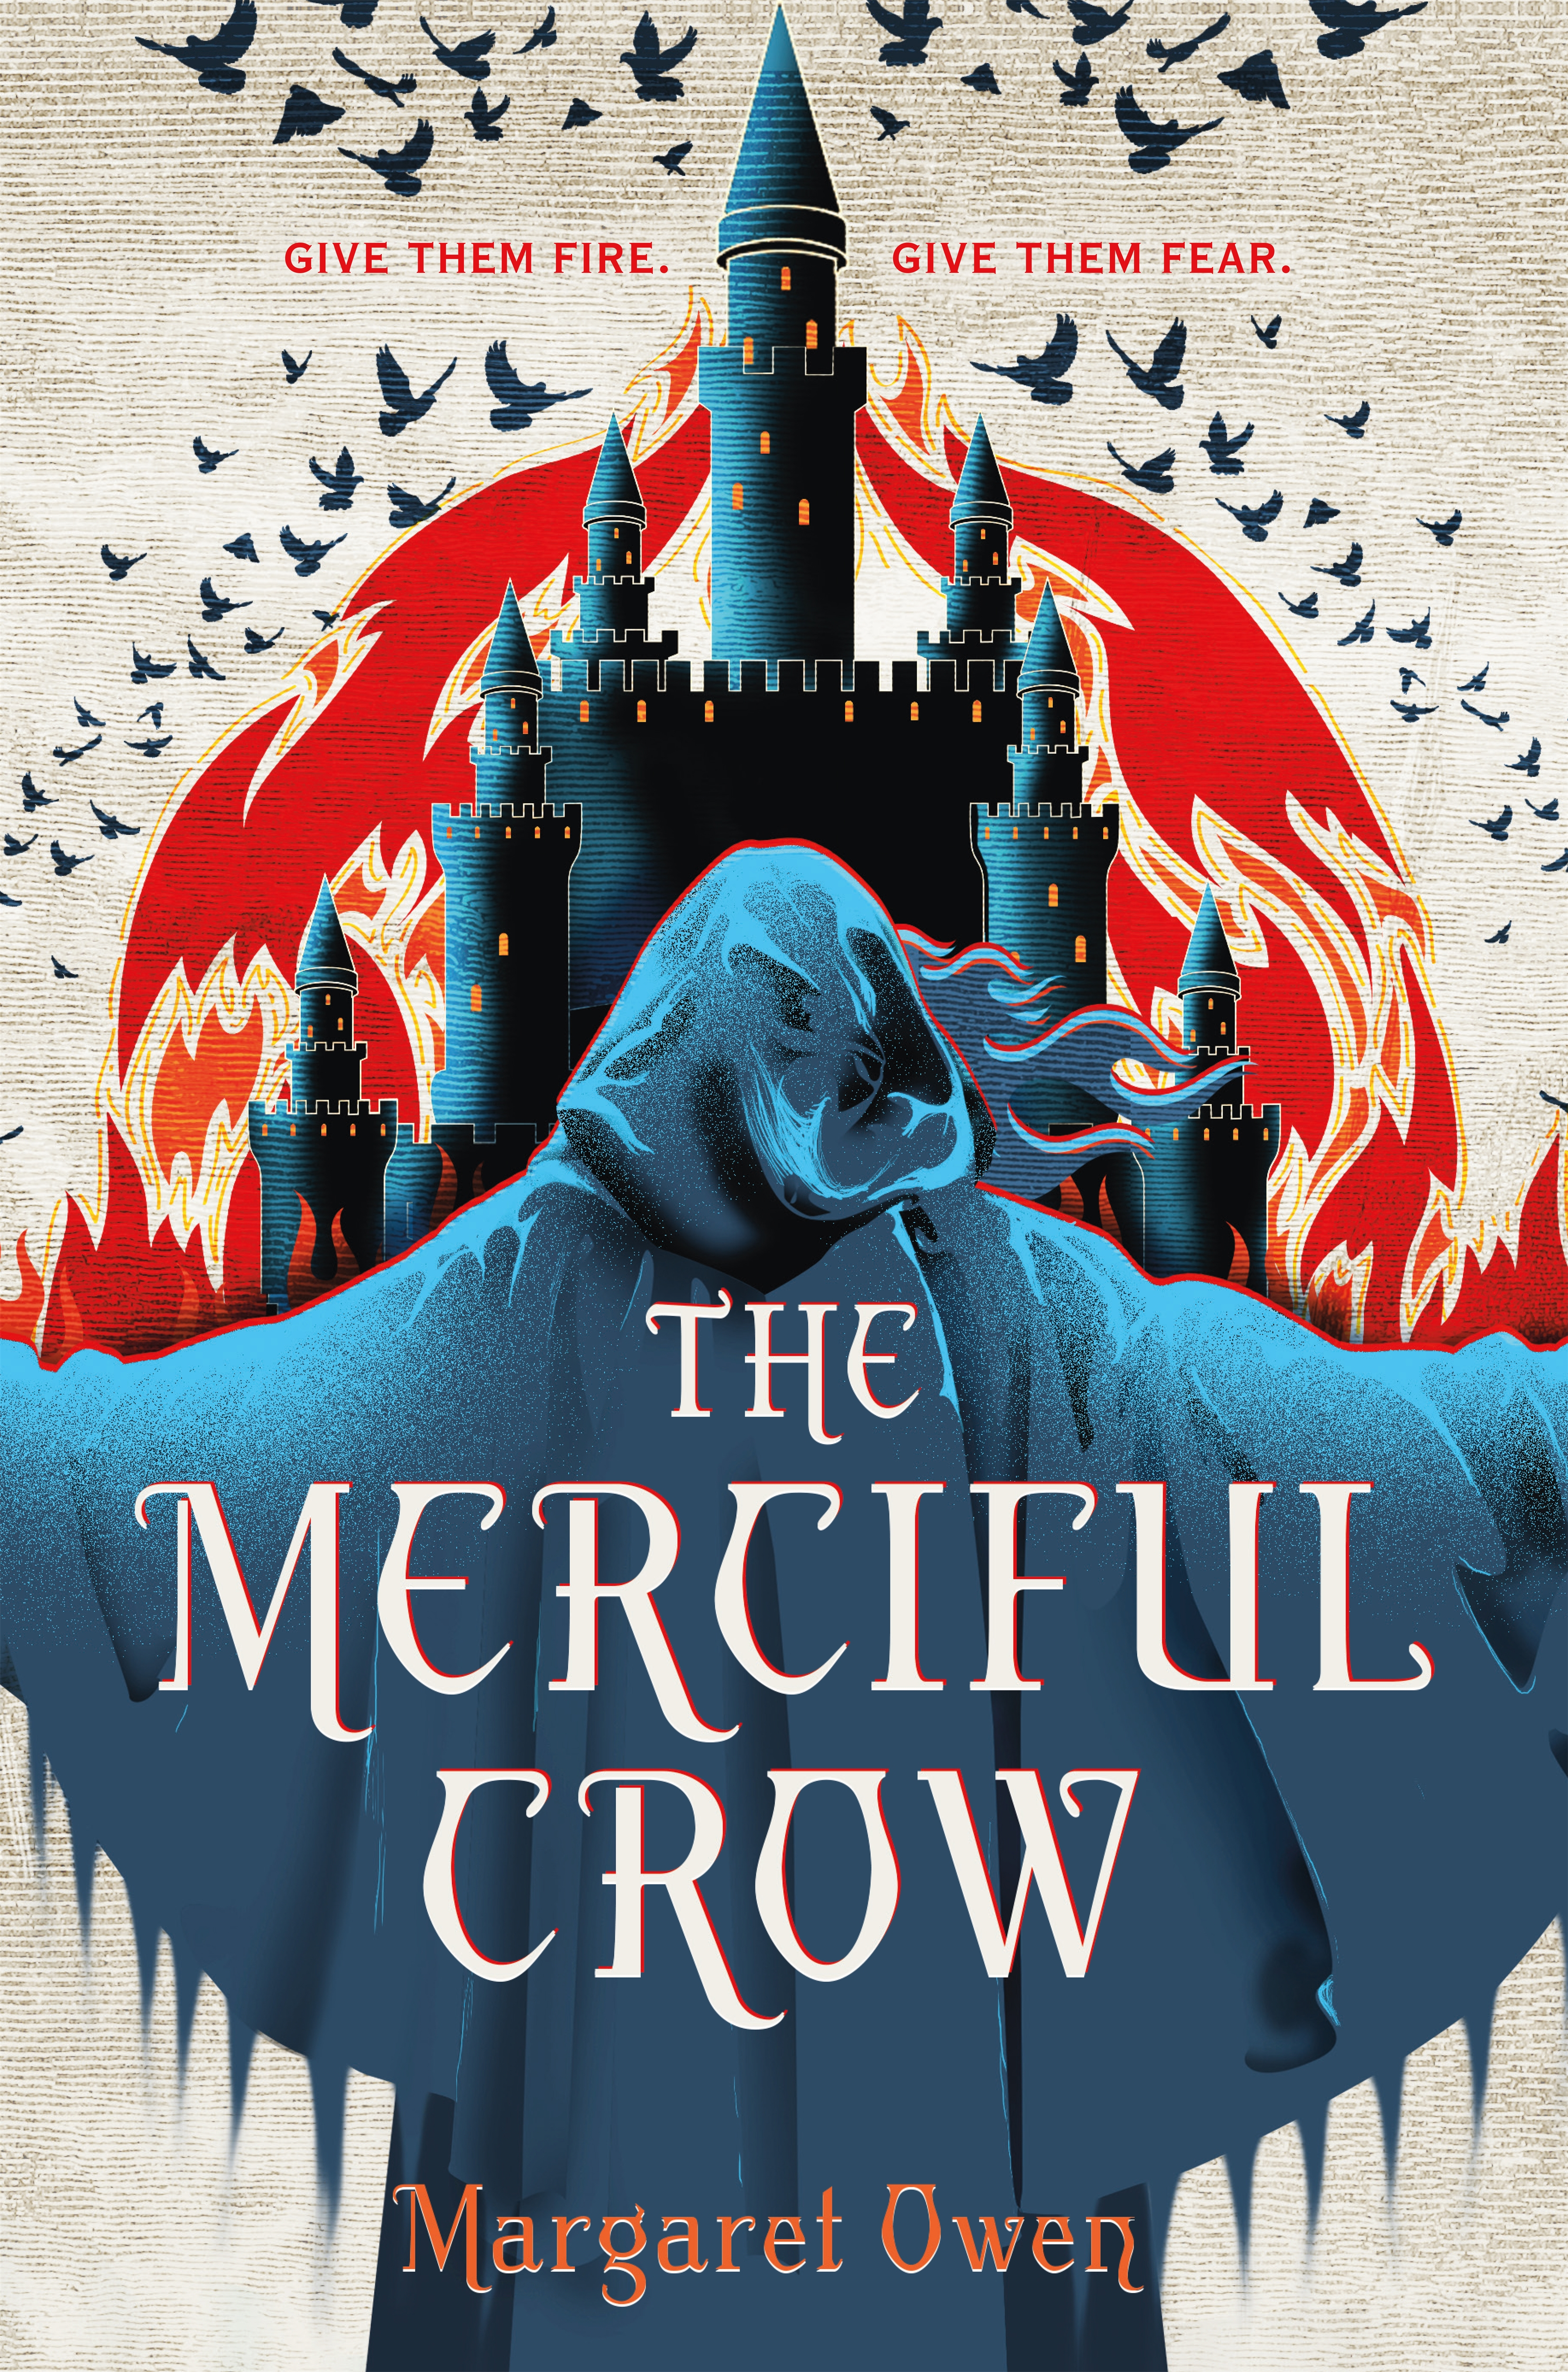 The merciful crow cover image